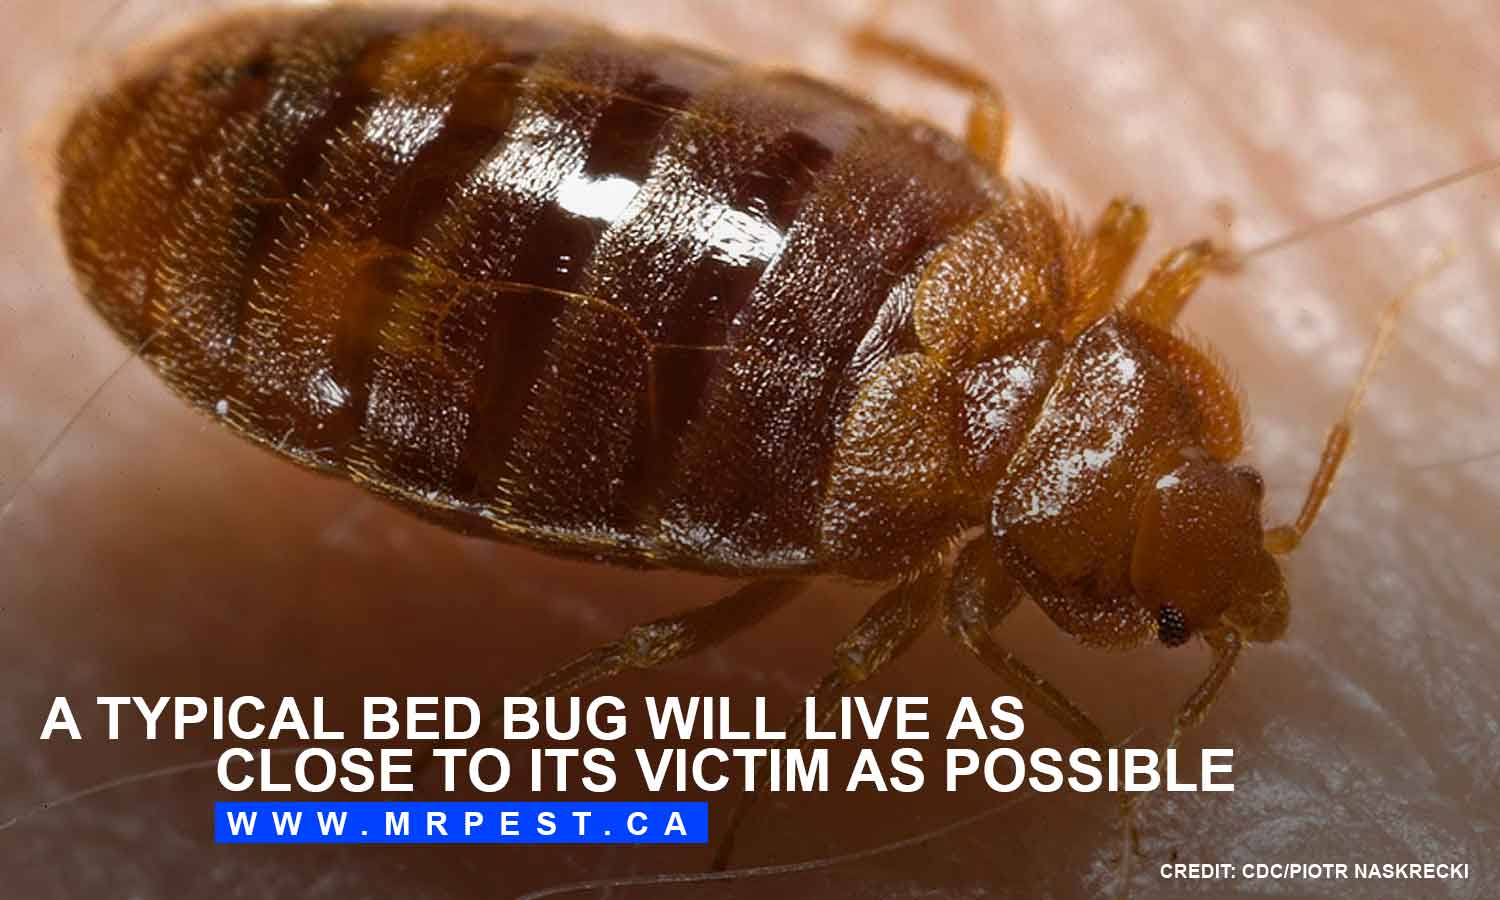 A typical bed bug will live as close to its victim as possible